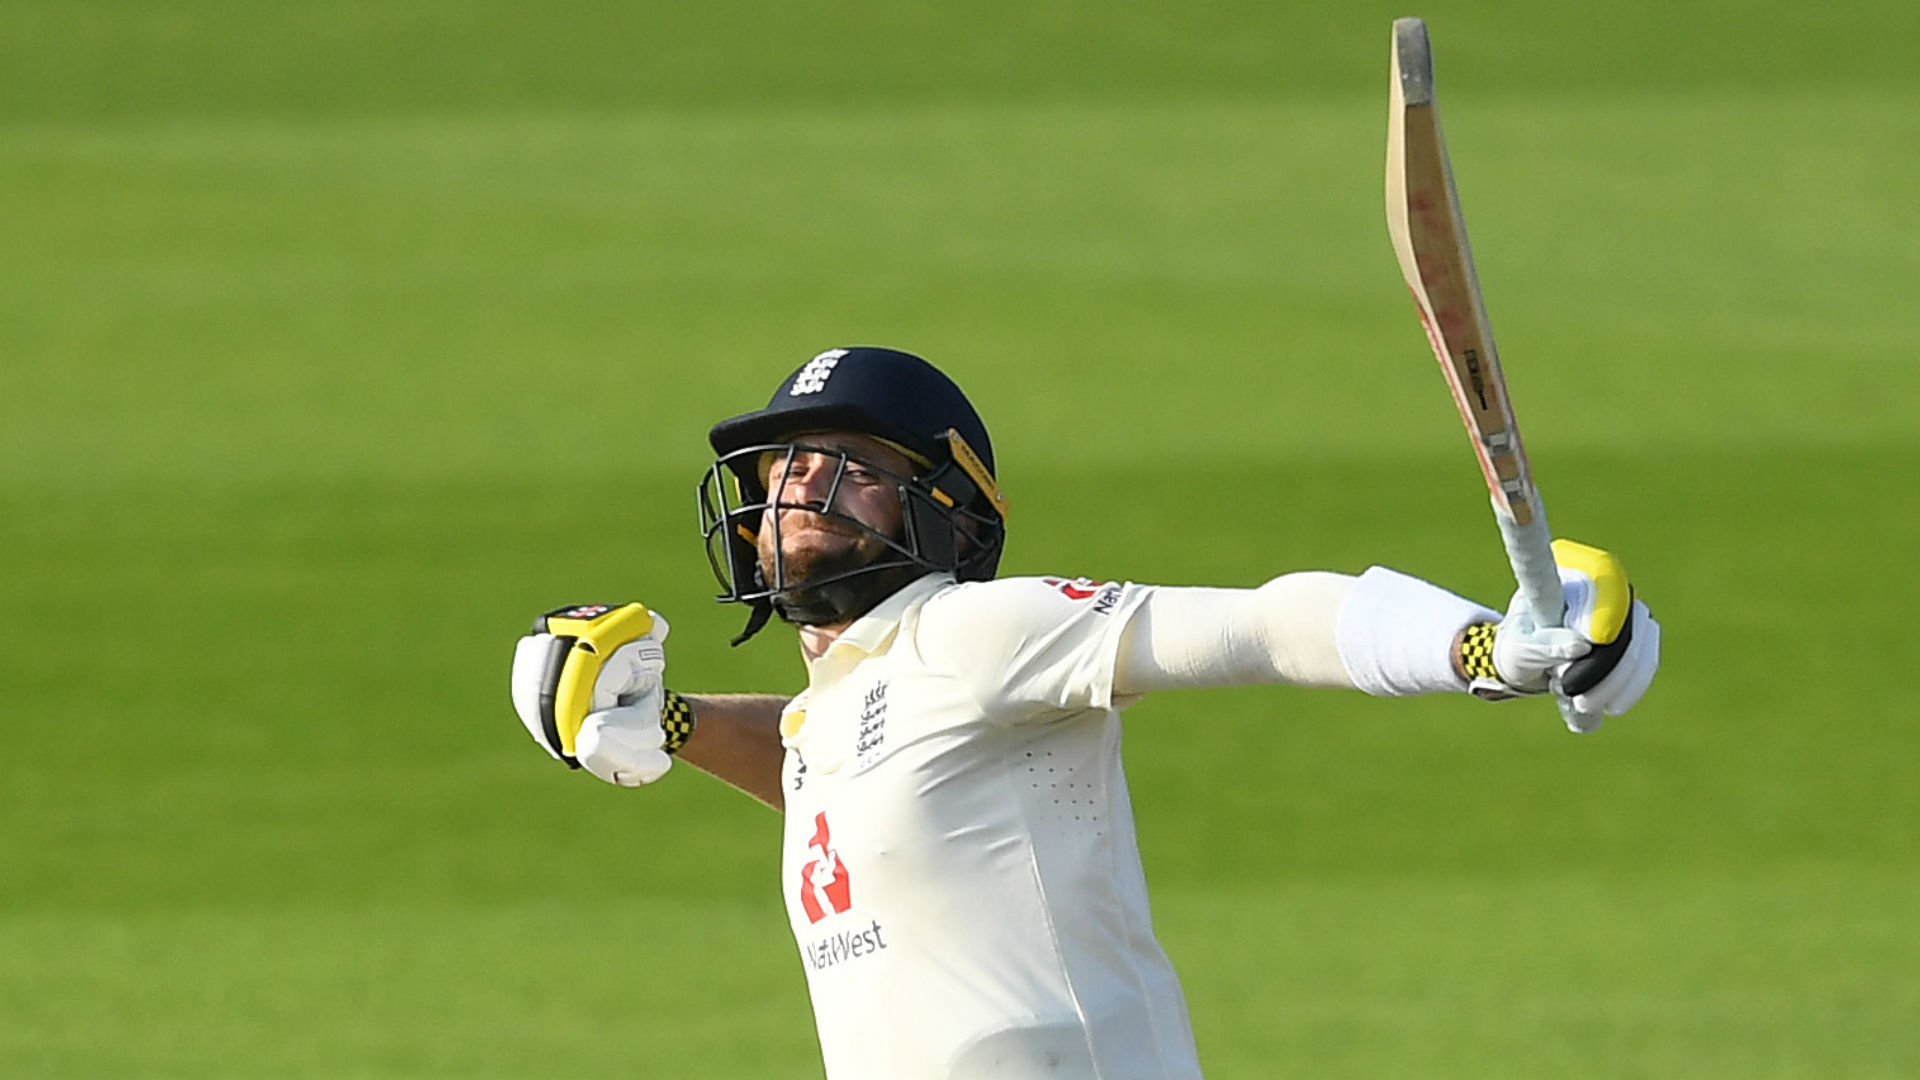 England never stop believing after Stokes' Ashes heroics – Root